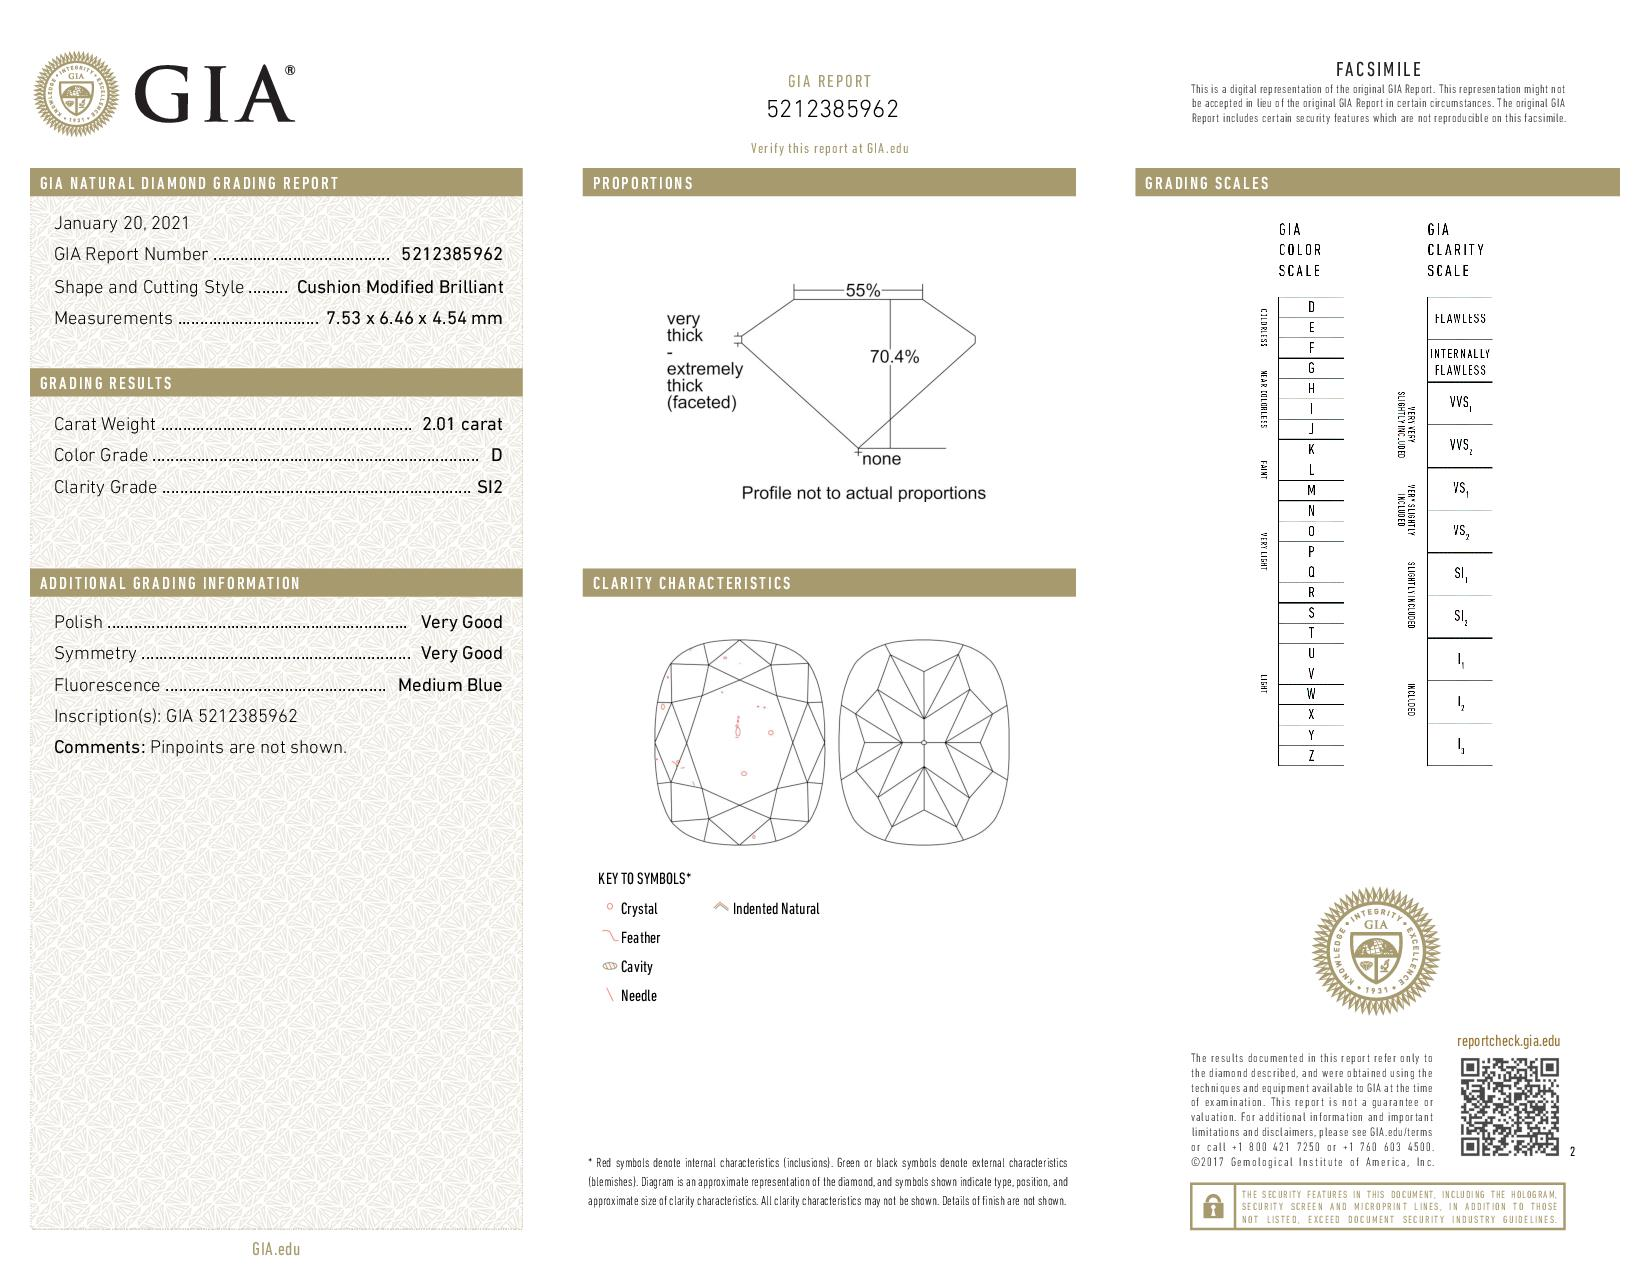 This is a 2.01 carat cushion shape, D color, SI2 clarity natural diamond accompanied by a GIA grading report.